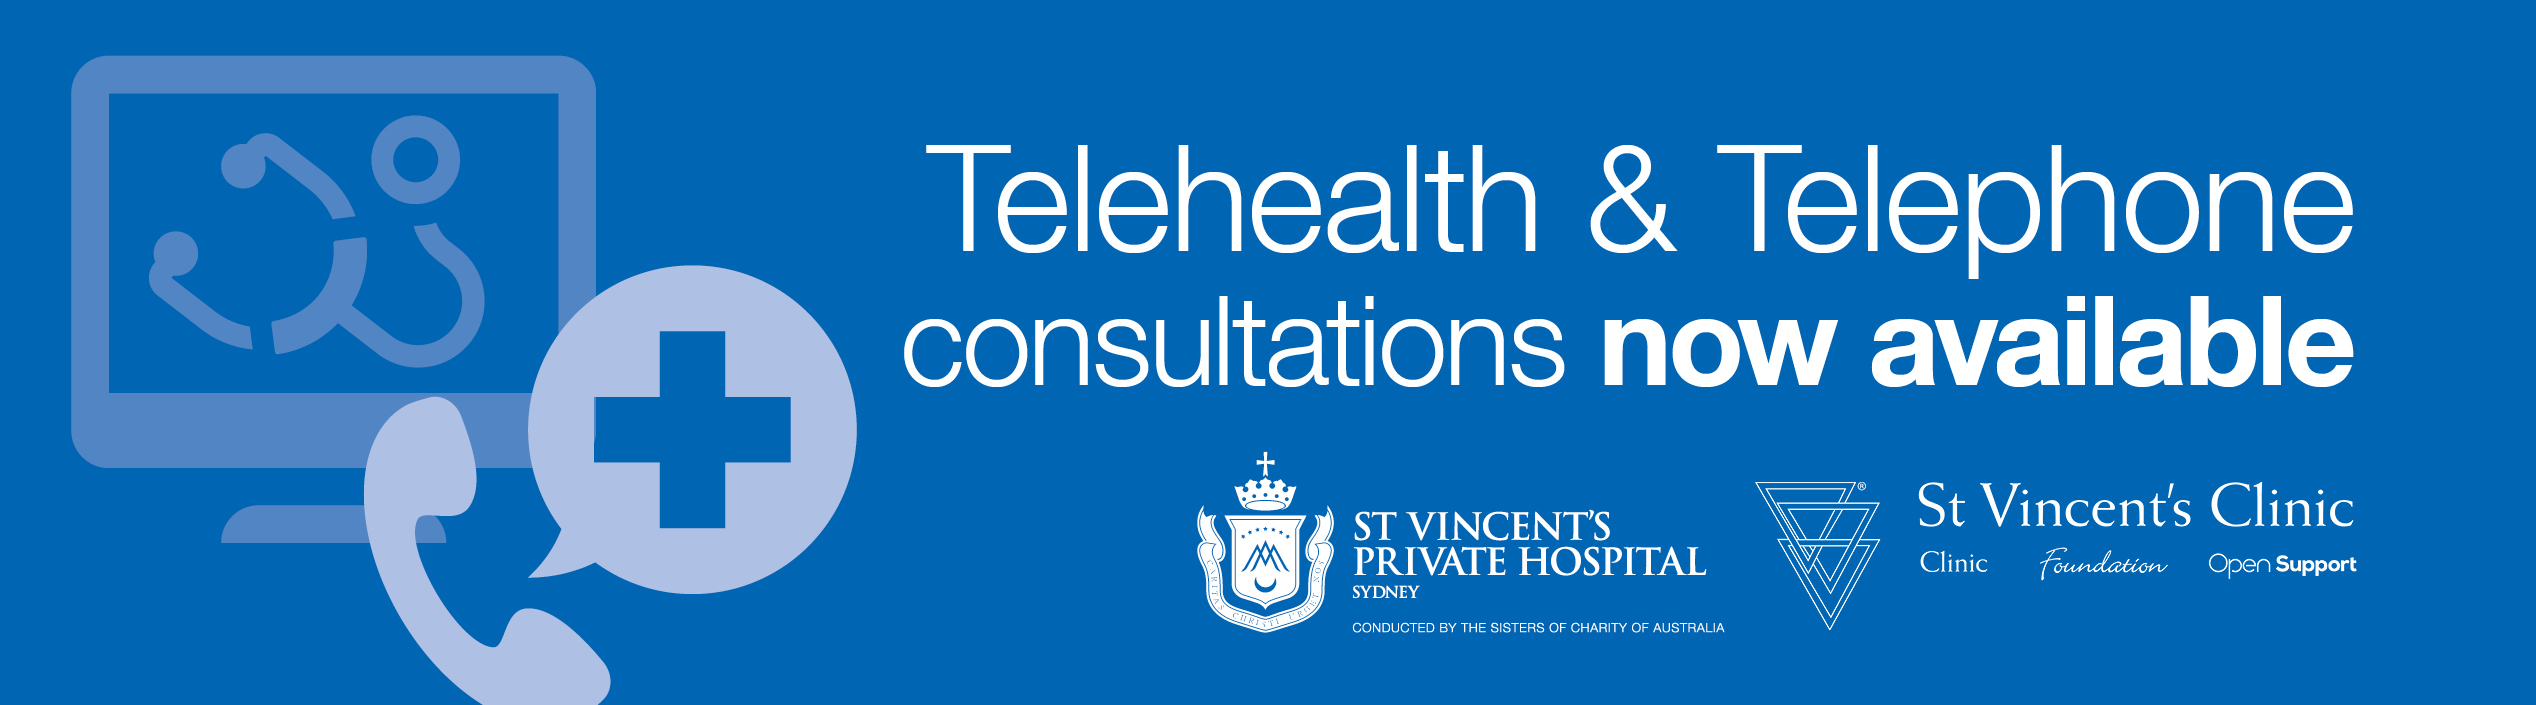 Telehealth - Telephone Web Banners 0320